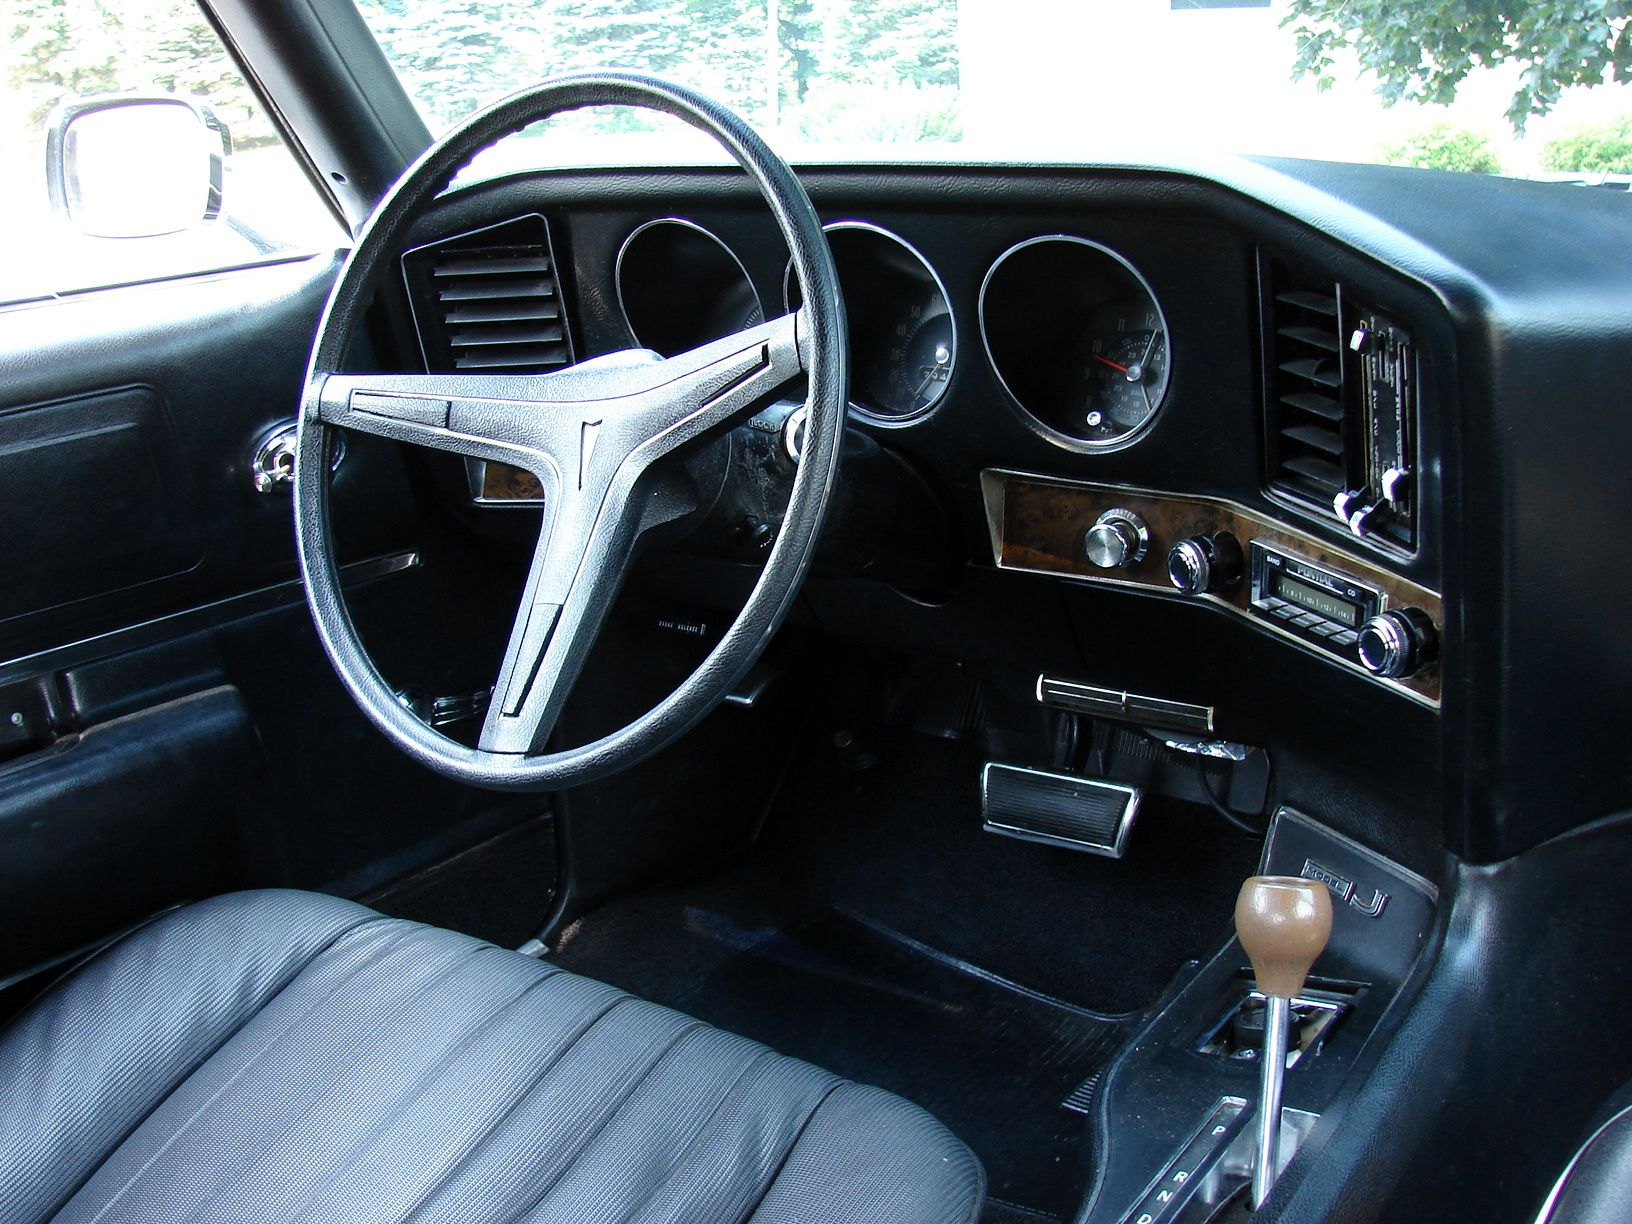 1969 Pontiac Grand Prix SJ interior John DeLorean